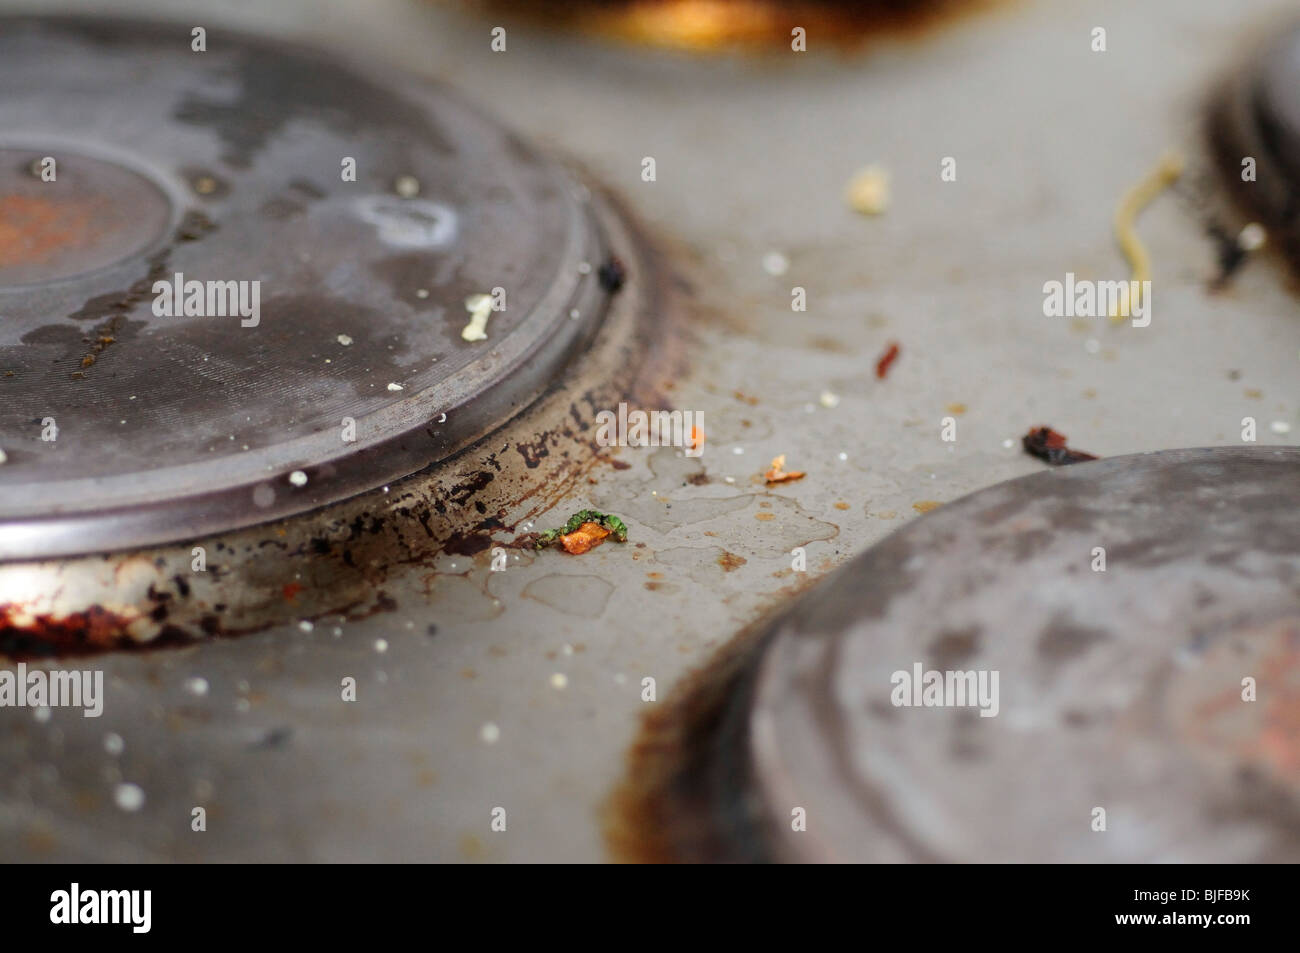 dirty electric Ceramic cooker hob - Stock Image